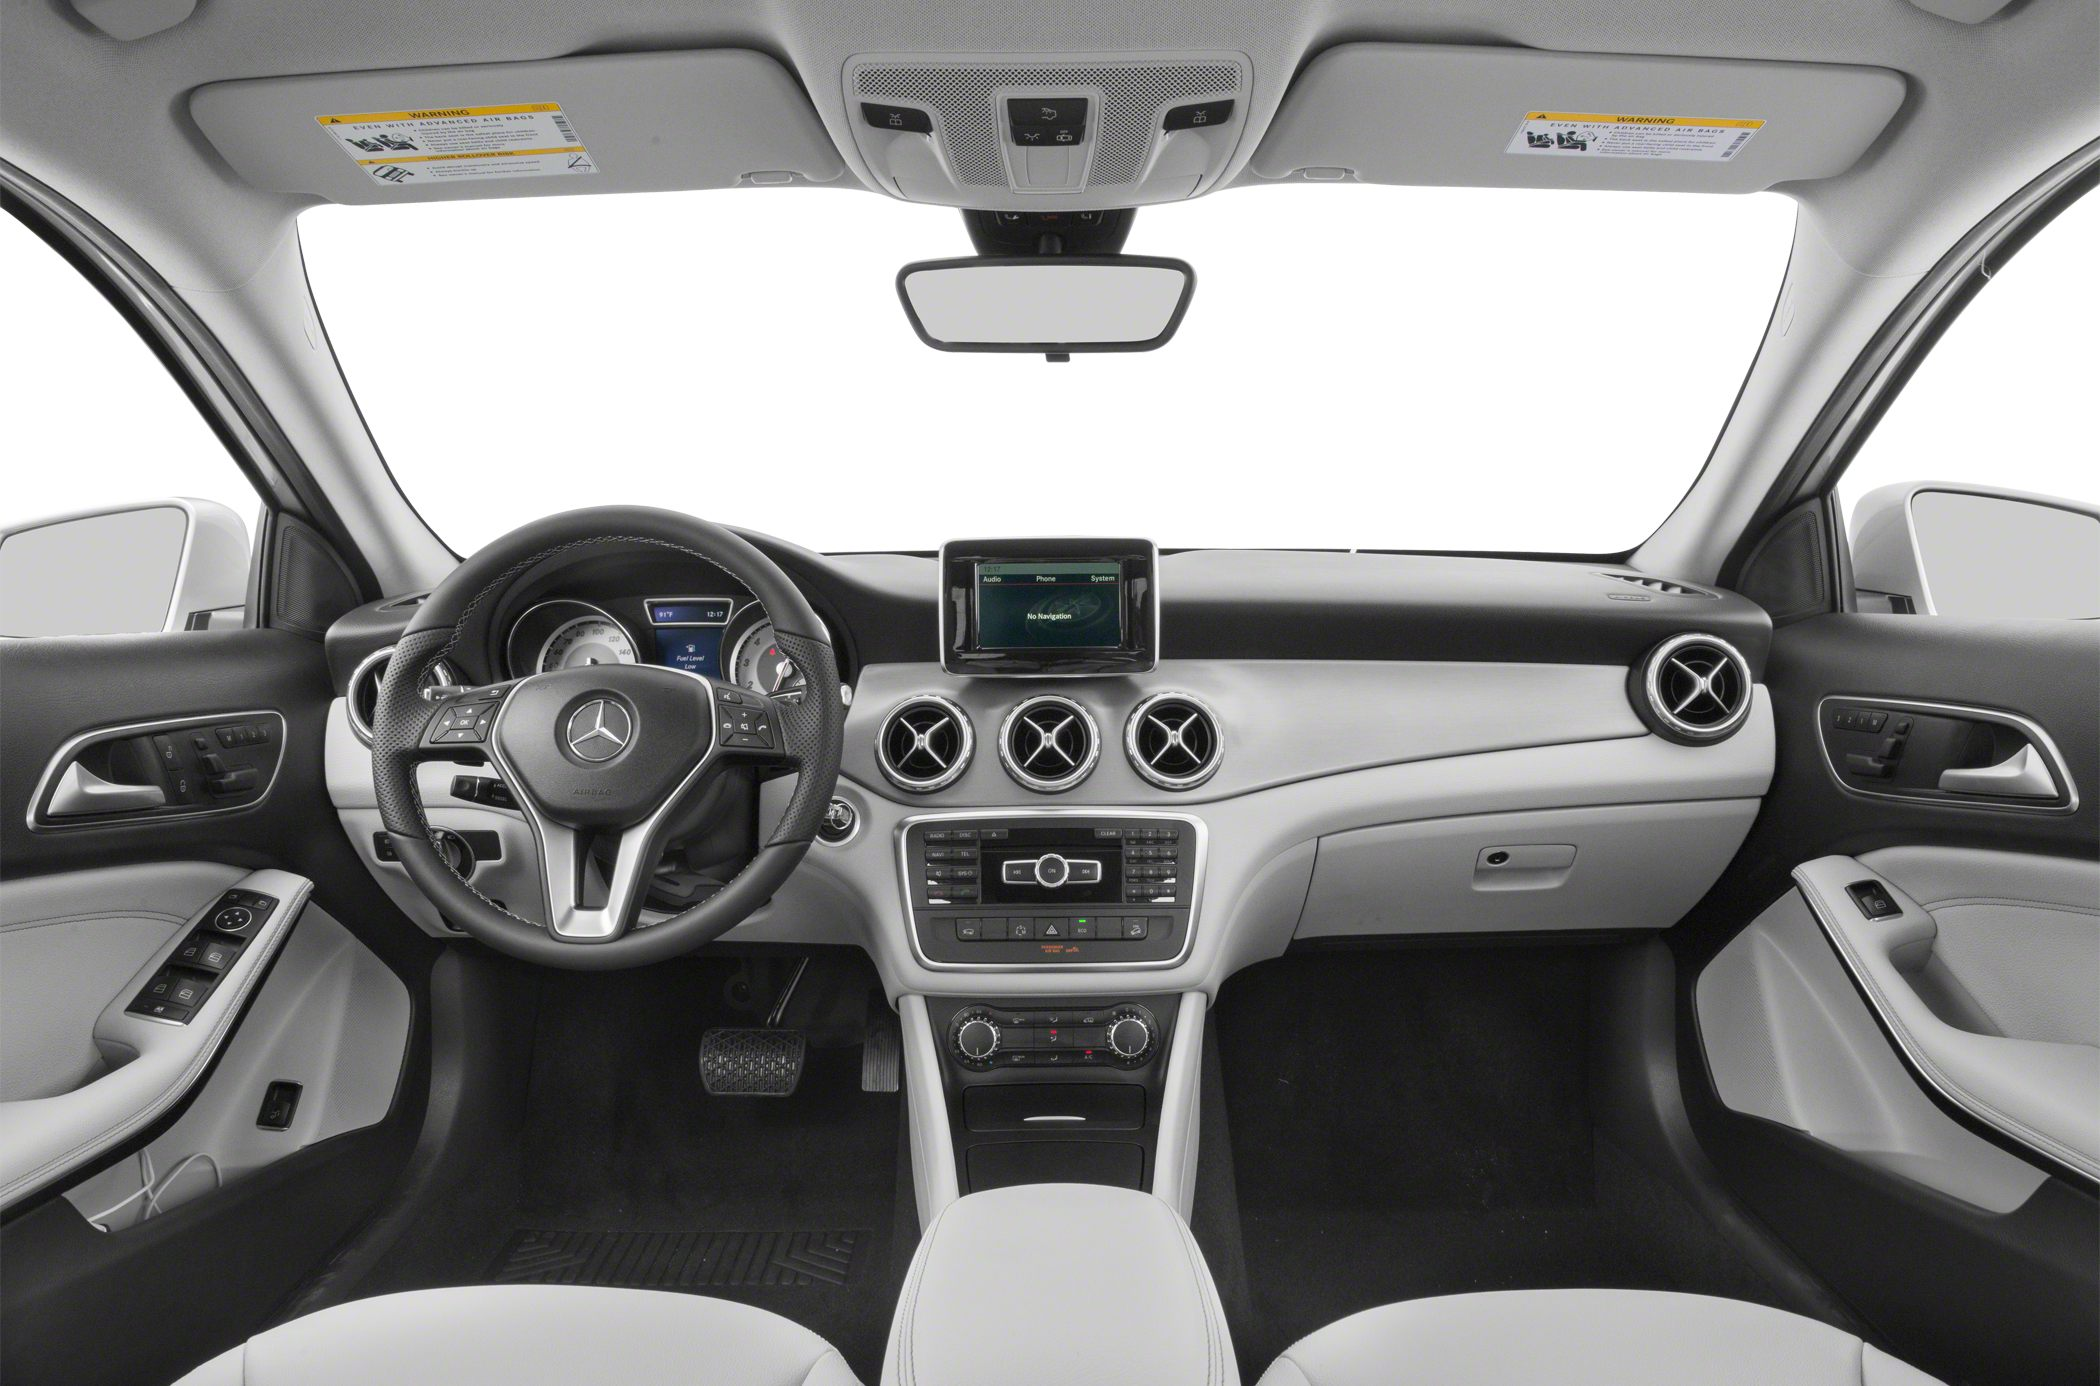 2015 Mercedes-Benz GLA250 Interior